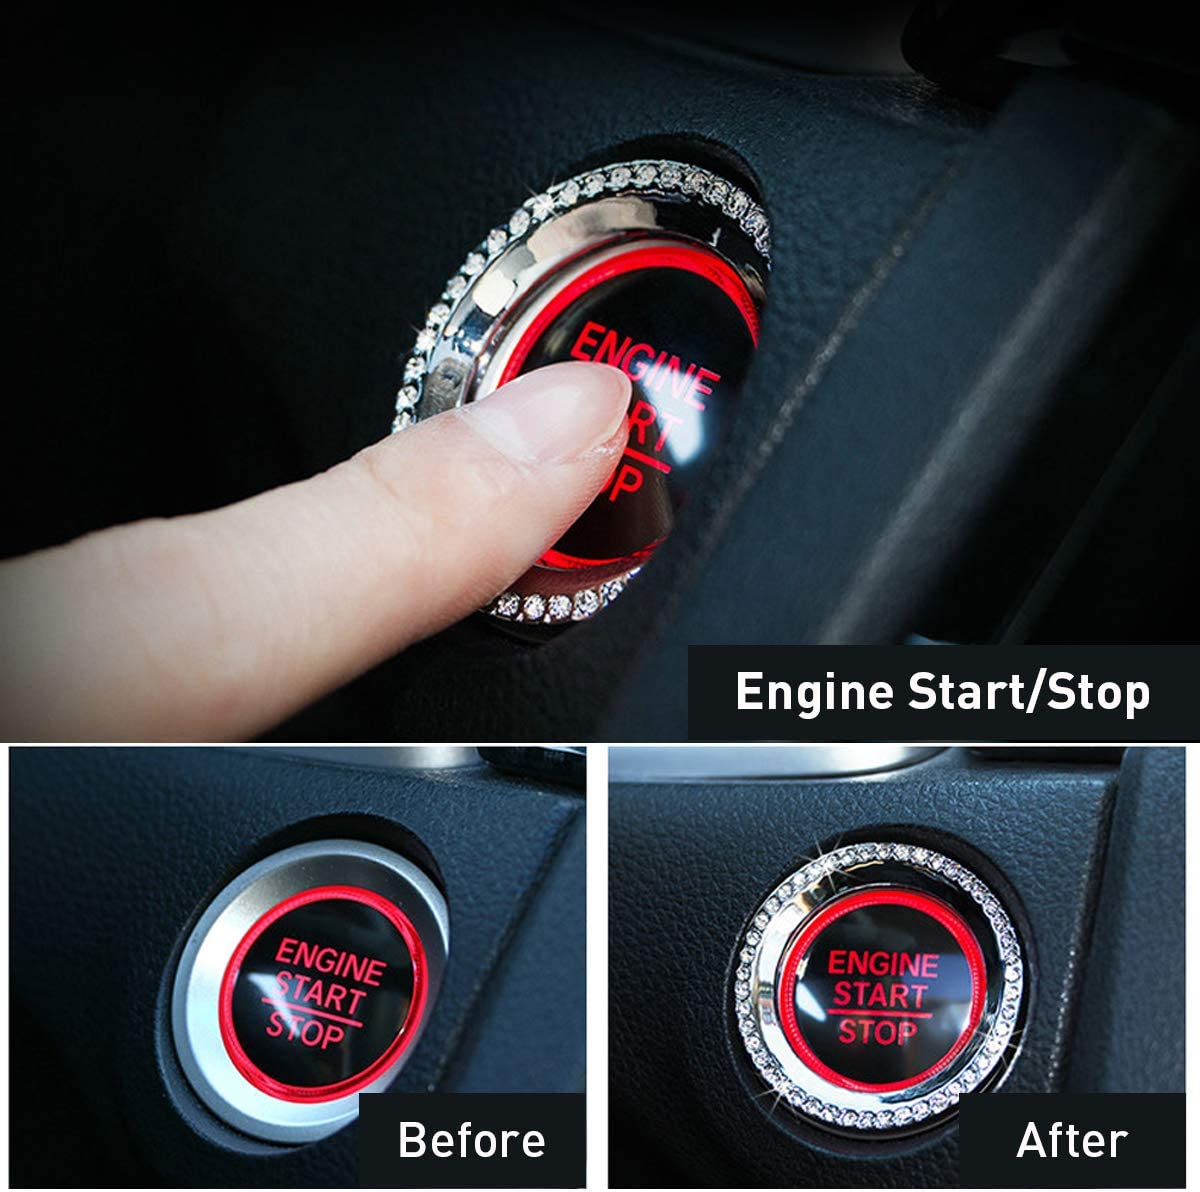 Silver Gear Shift Head Cover Decal Trim for 2016 2017 2018 2019 2020 Honda Civic KFZMAN 3 in 1 Engine Start Decoration Ring Cover Bling Bling Auto AC Conditioner Knob Ring Trim for 10TH Honda Civic